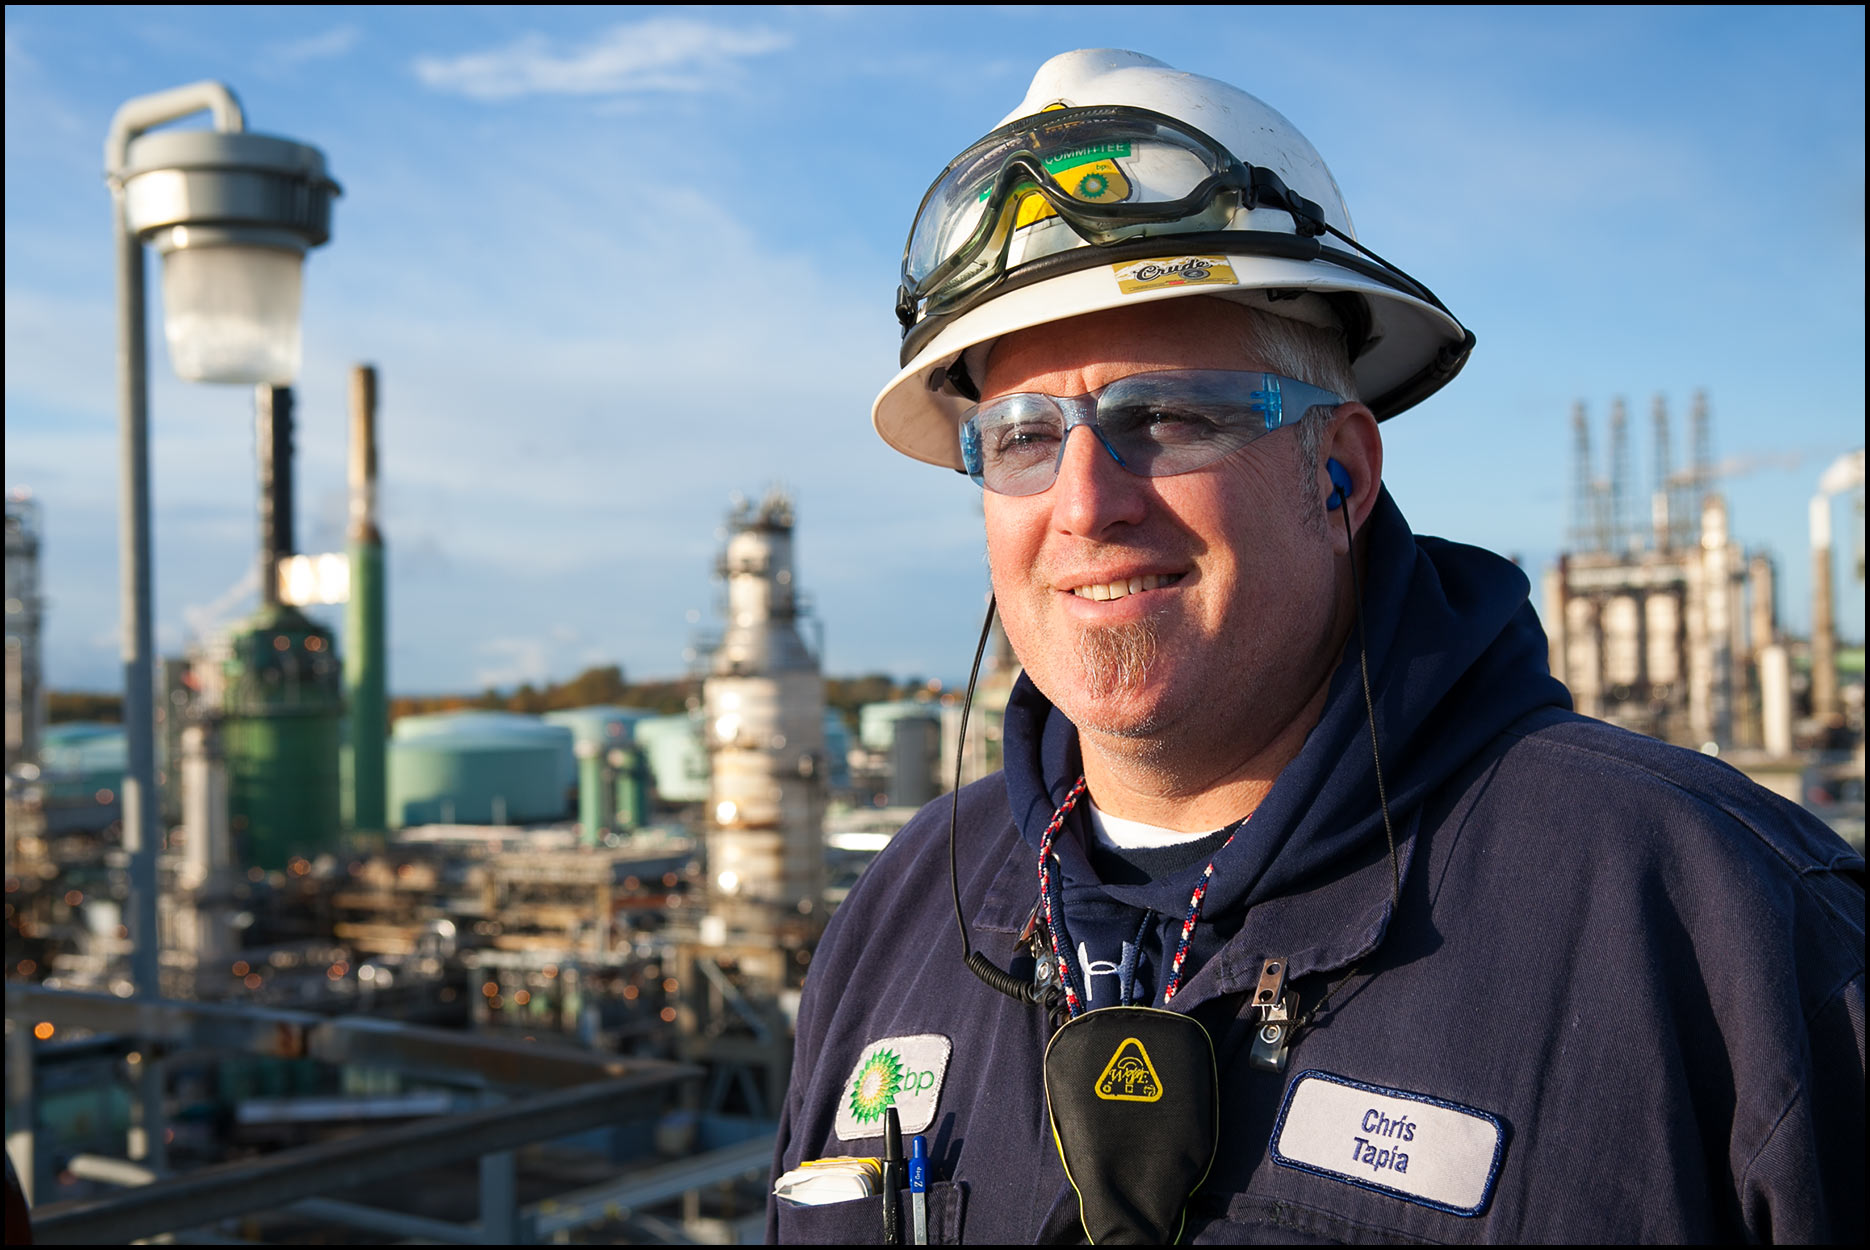 A portrait of a refinery operator wearing blue safety glasses and standing on top of a refinery unit.